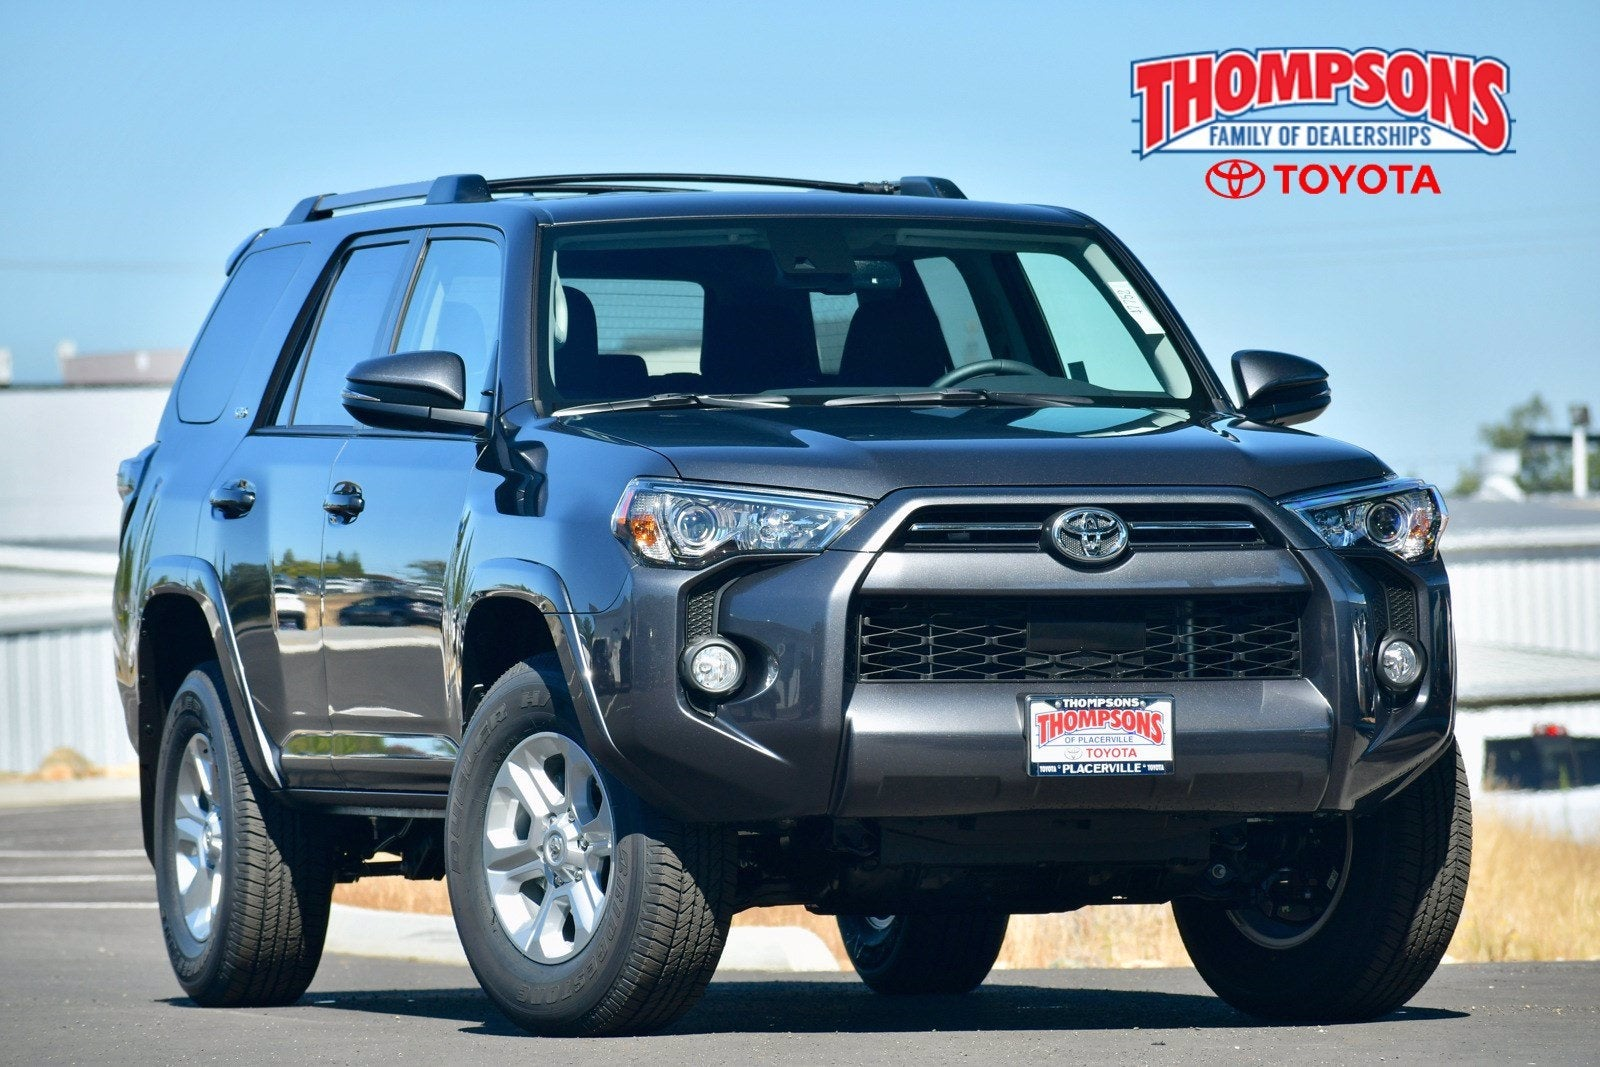 Inc TOYOTA Au-Tomotive Gold Name Badge License Plate 4Runner Chrome on Mirrored